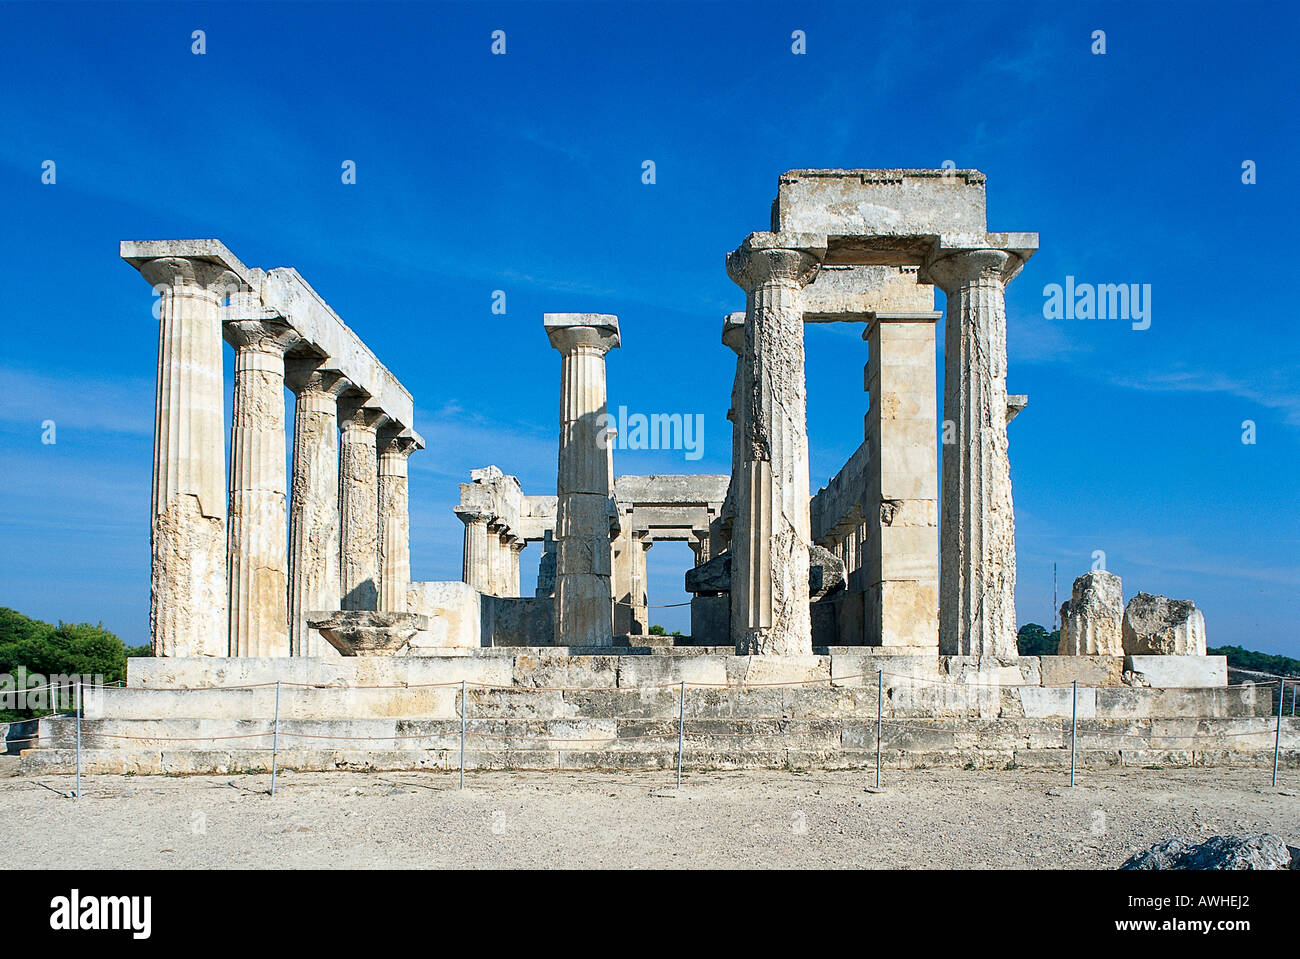 Home to the spectacular and well-preserved ancient temple of Aphaia, Aigina has a rich history due to its proximity to Athens. - Stock Image